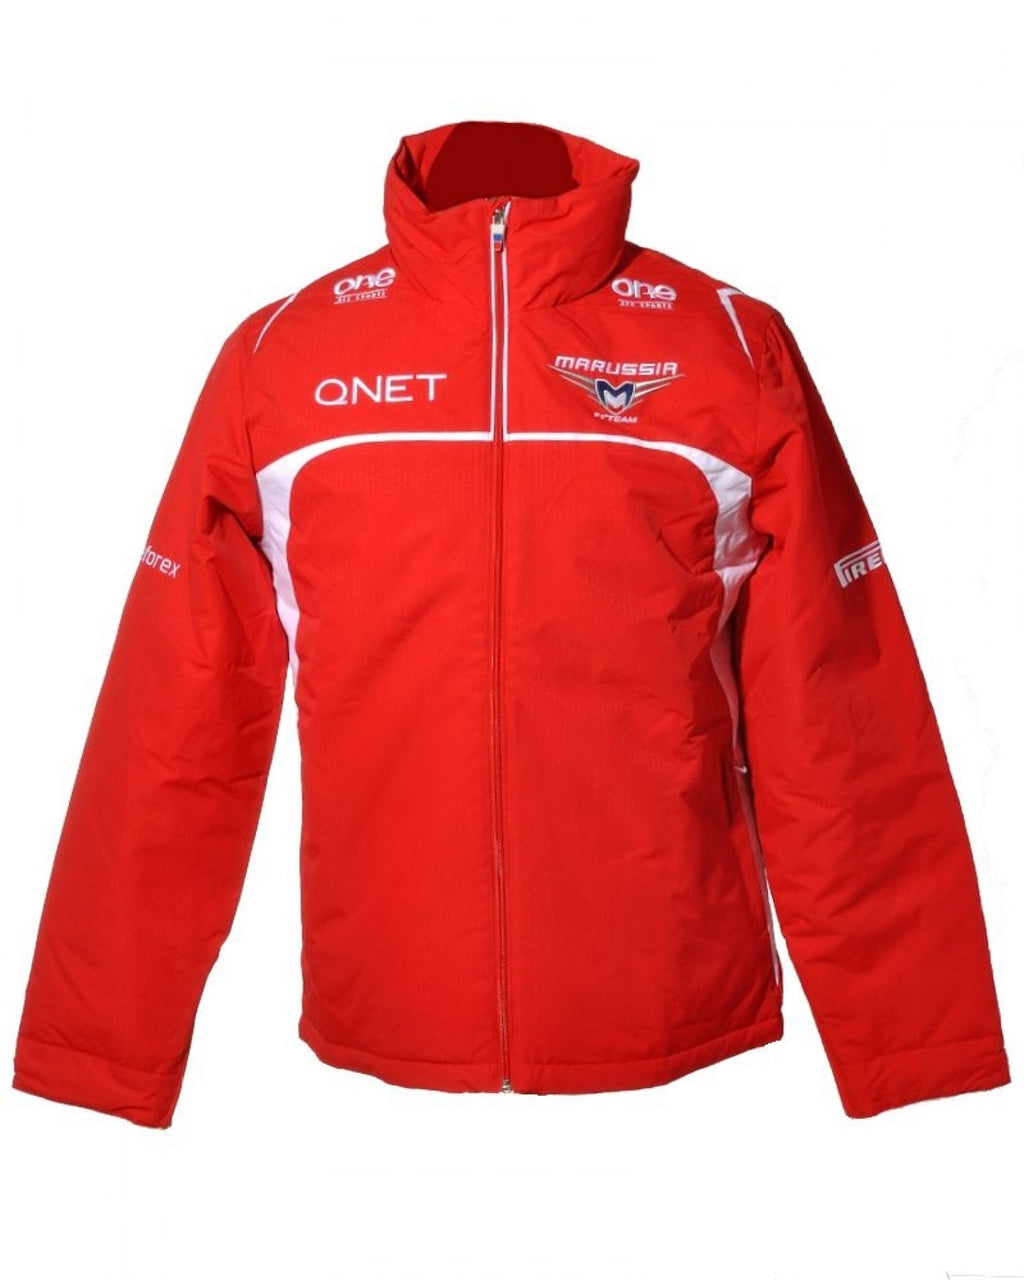 UNISEX WINTER JACKET - One All Sports